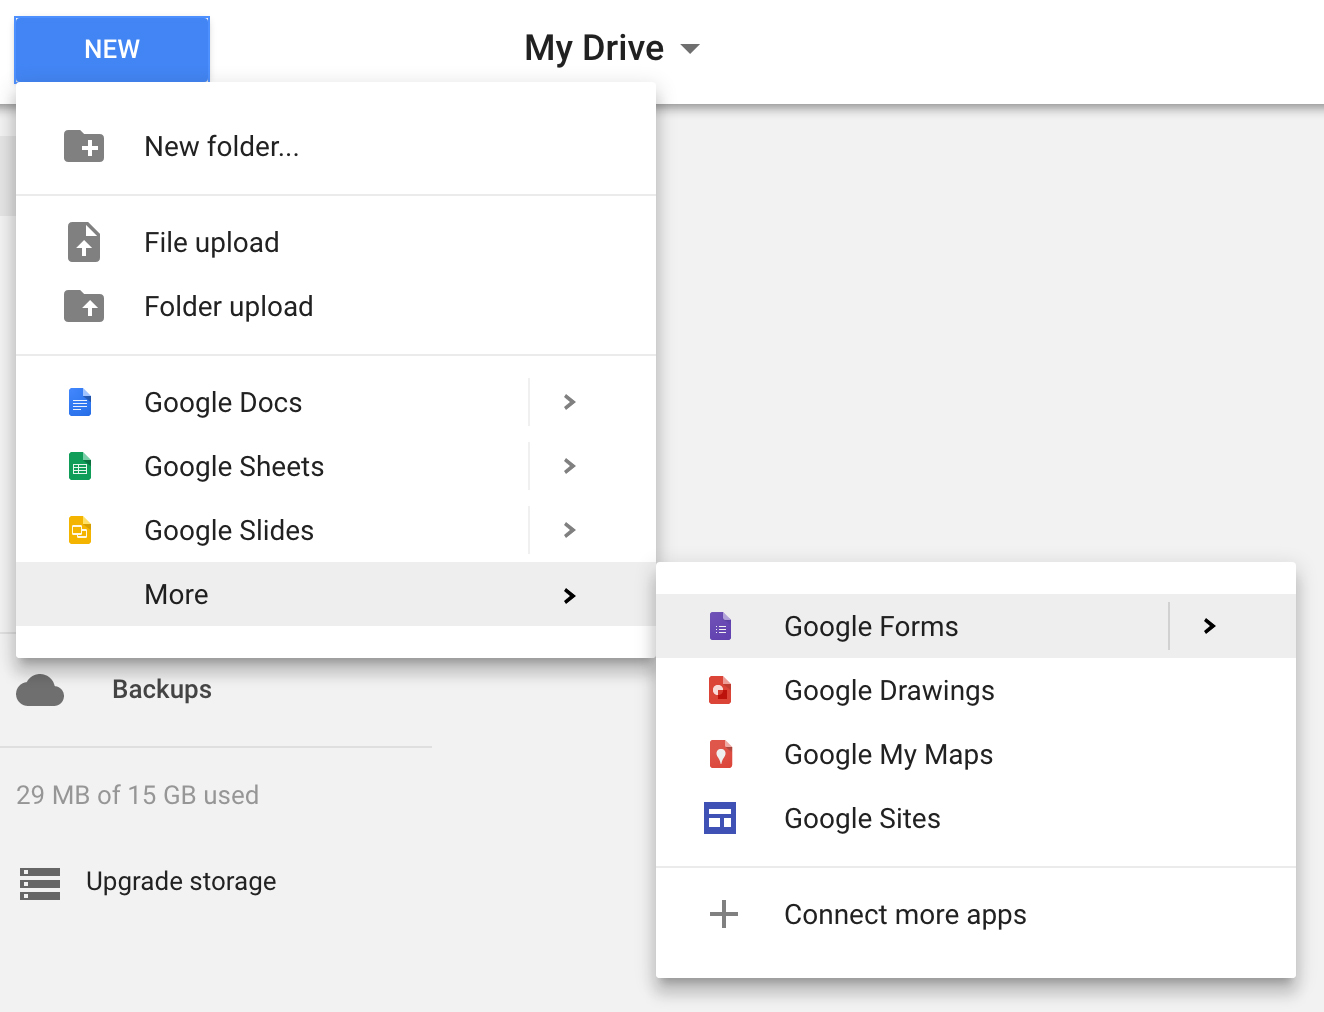 New > More > Google Forms